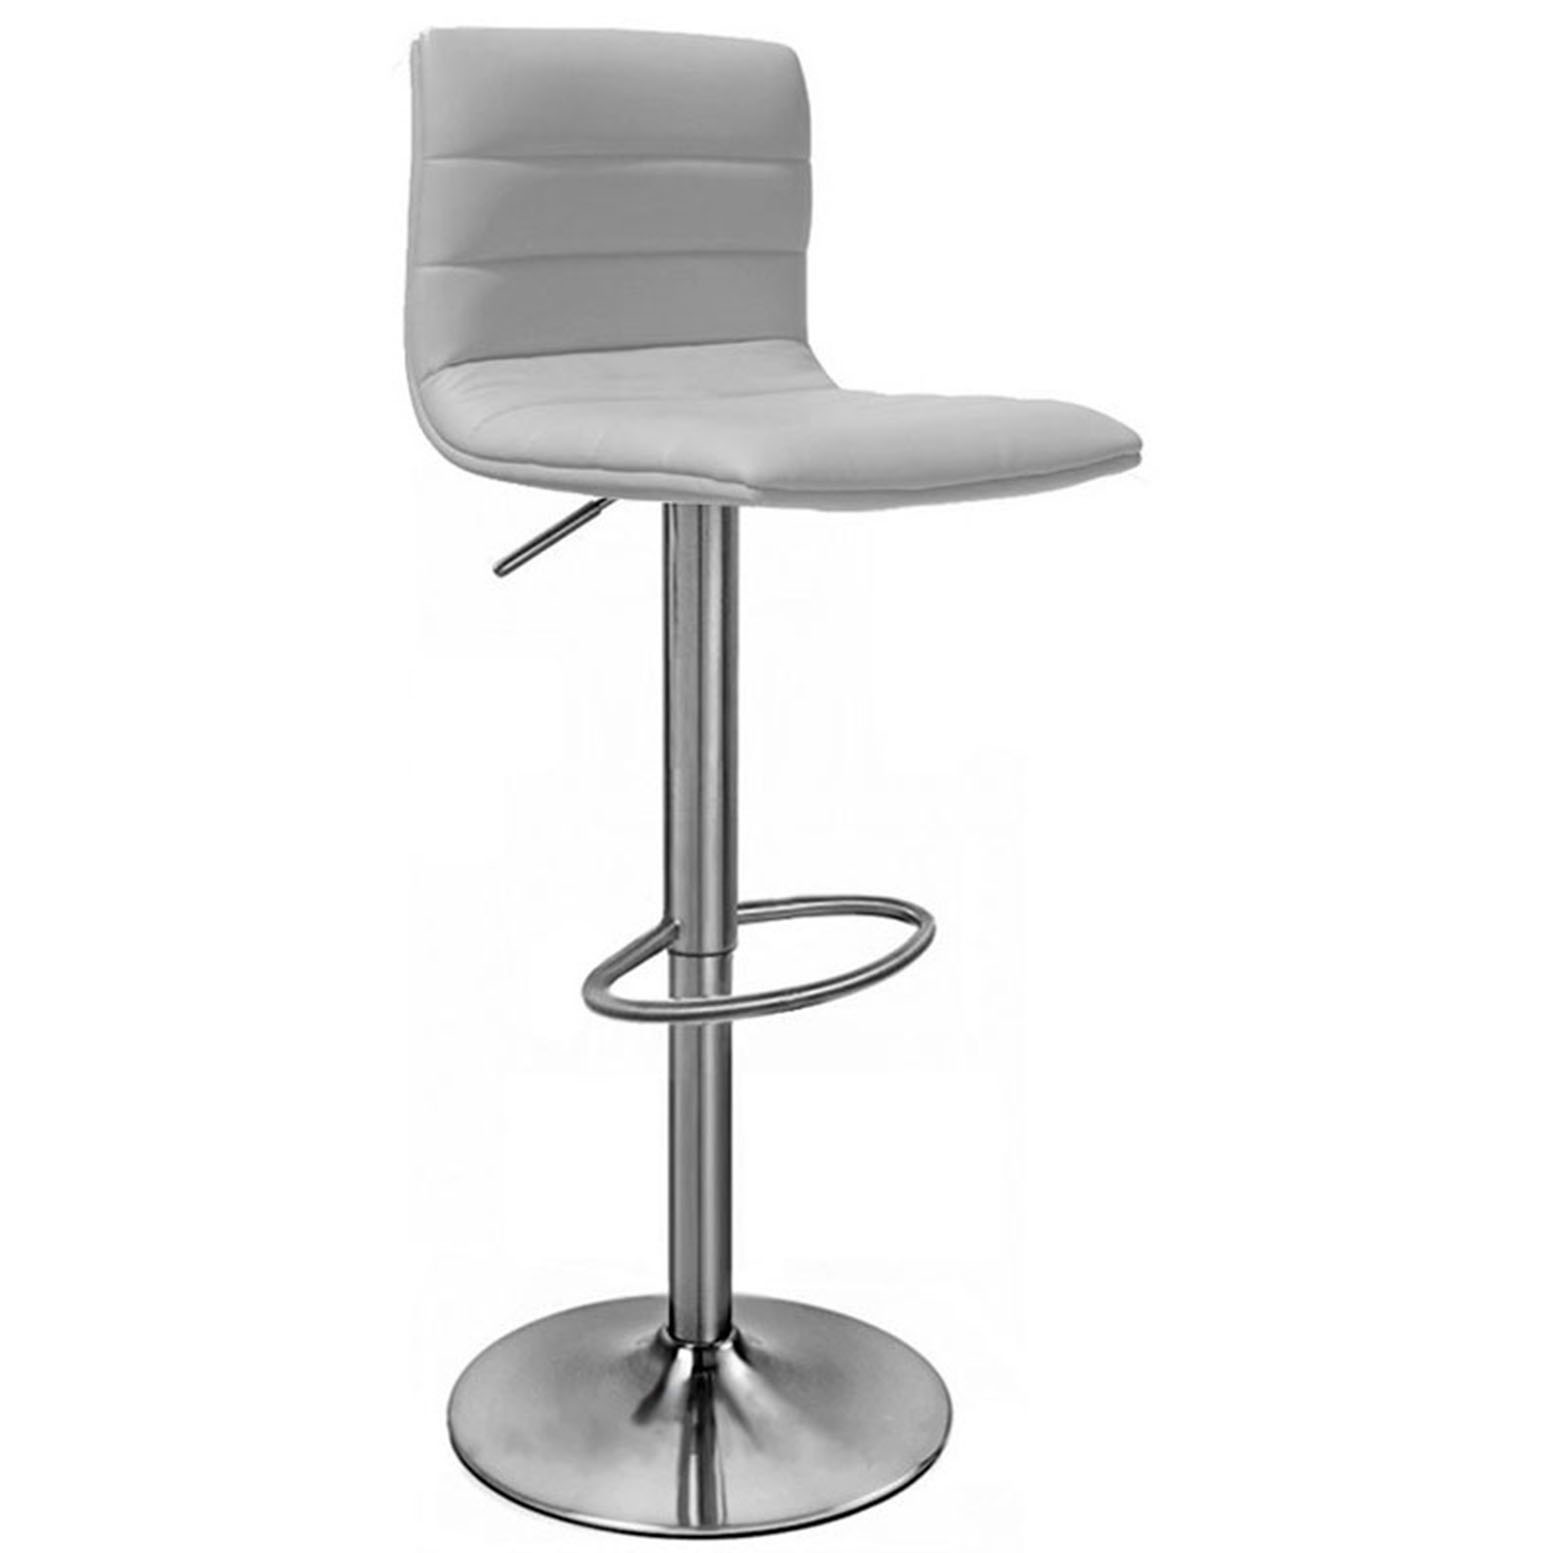 Aldo Brushed Bar Stool Grey Size X 390mm X 390mm